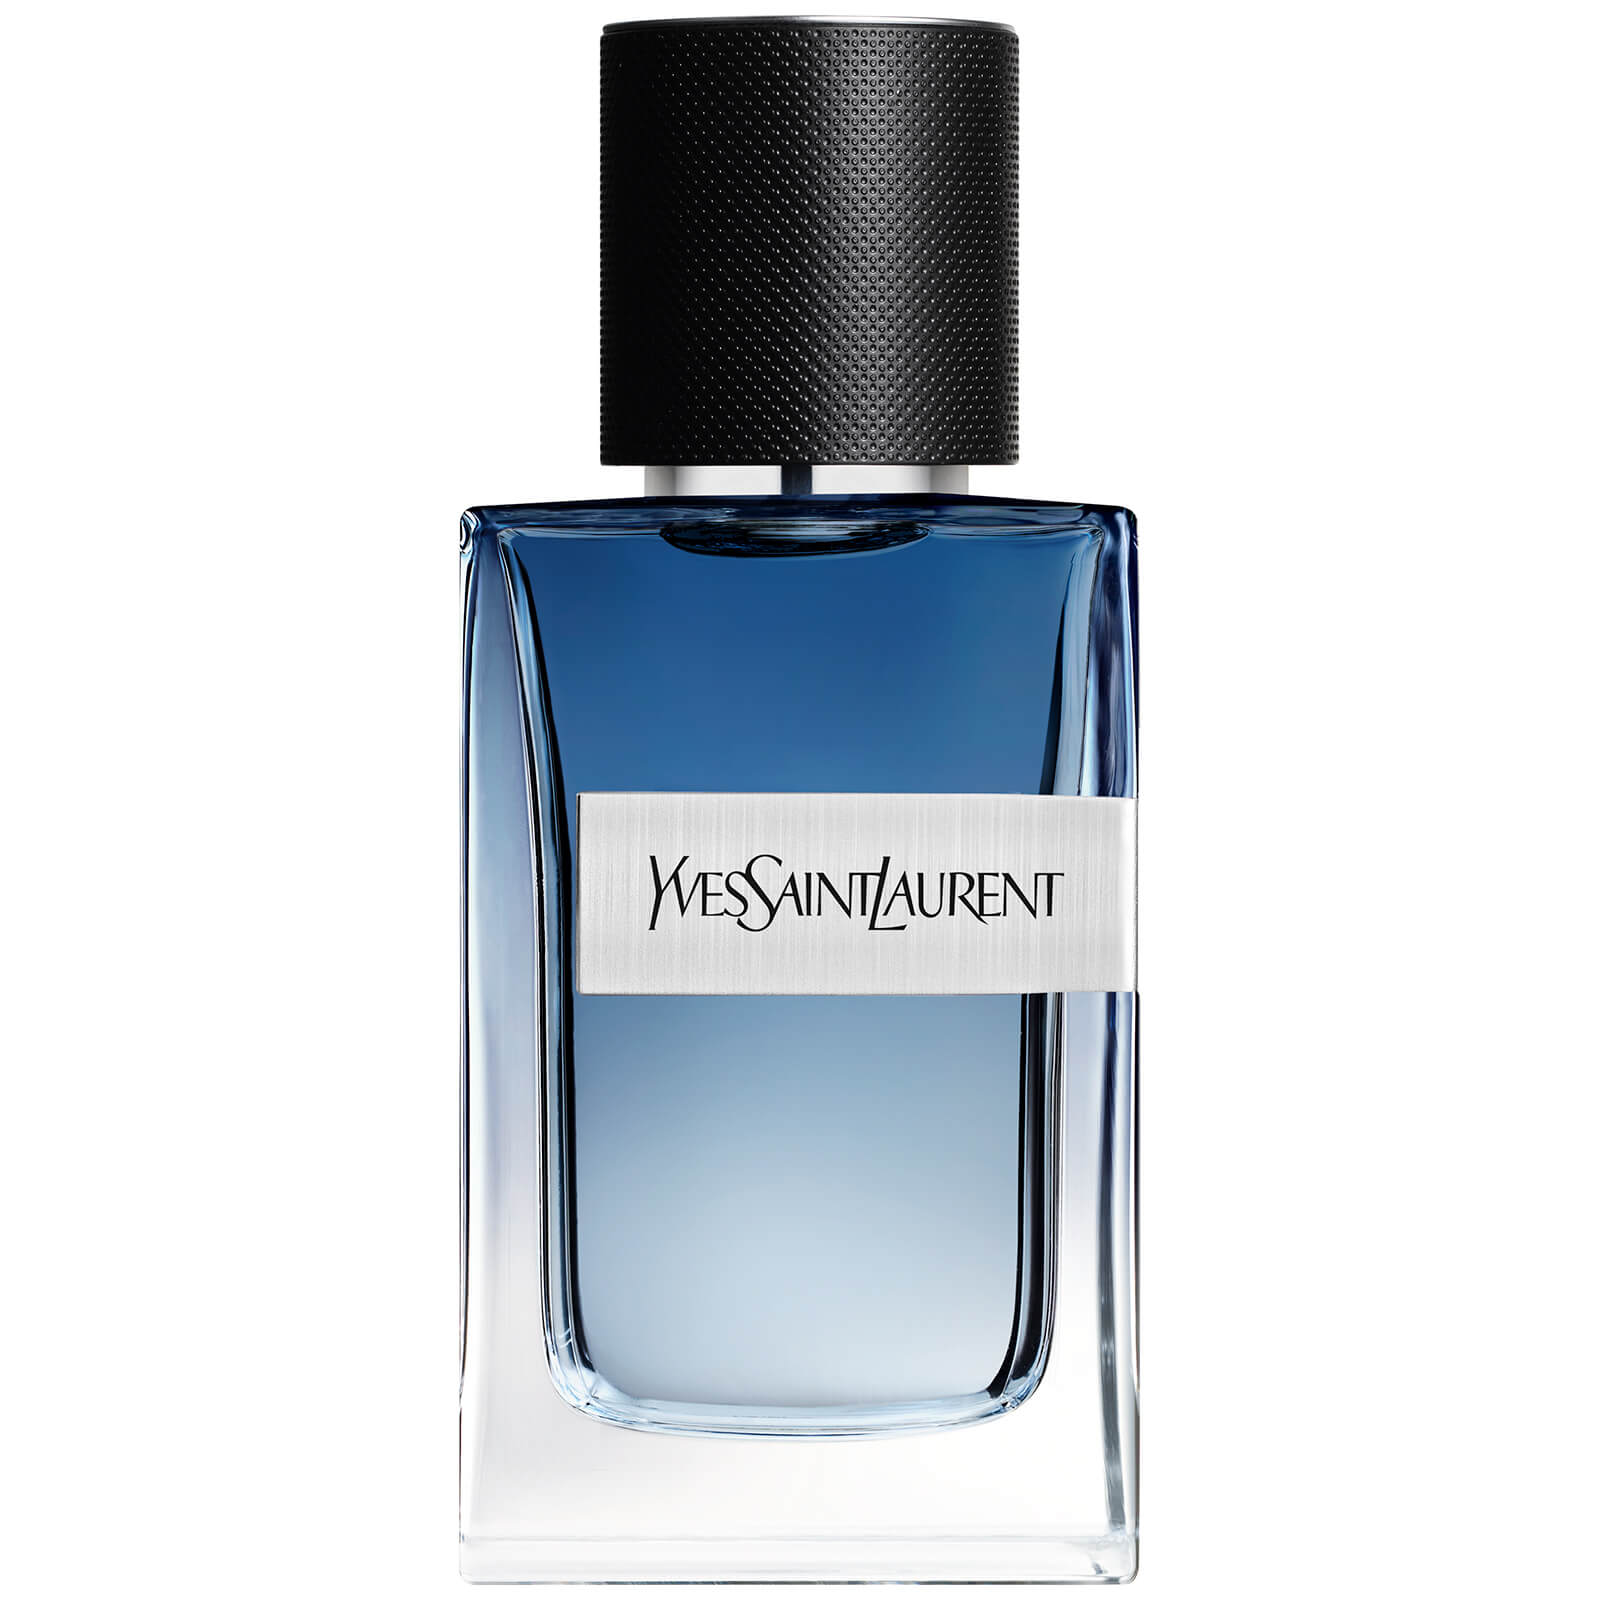 Y Yves Saint Laurent Live Intense - Eau de Toilette  60 ml